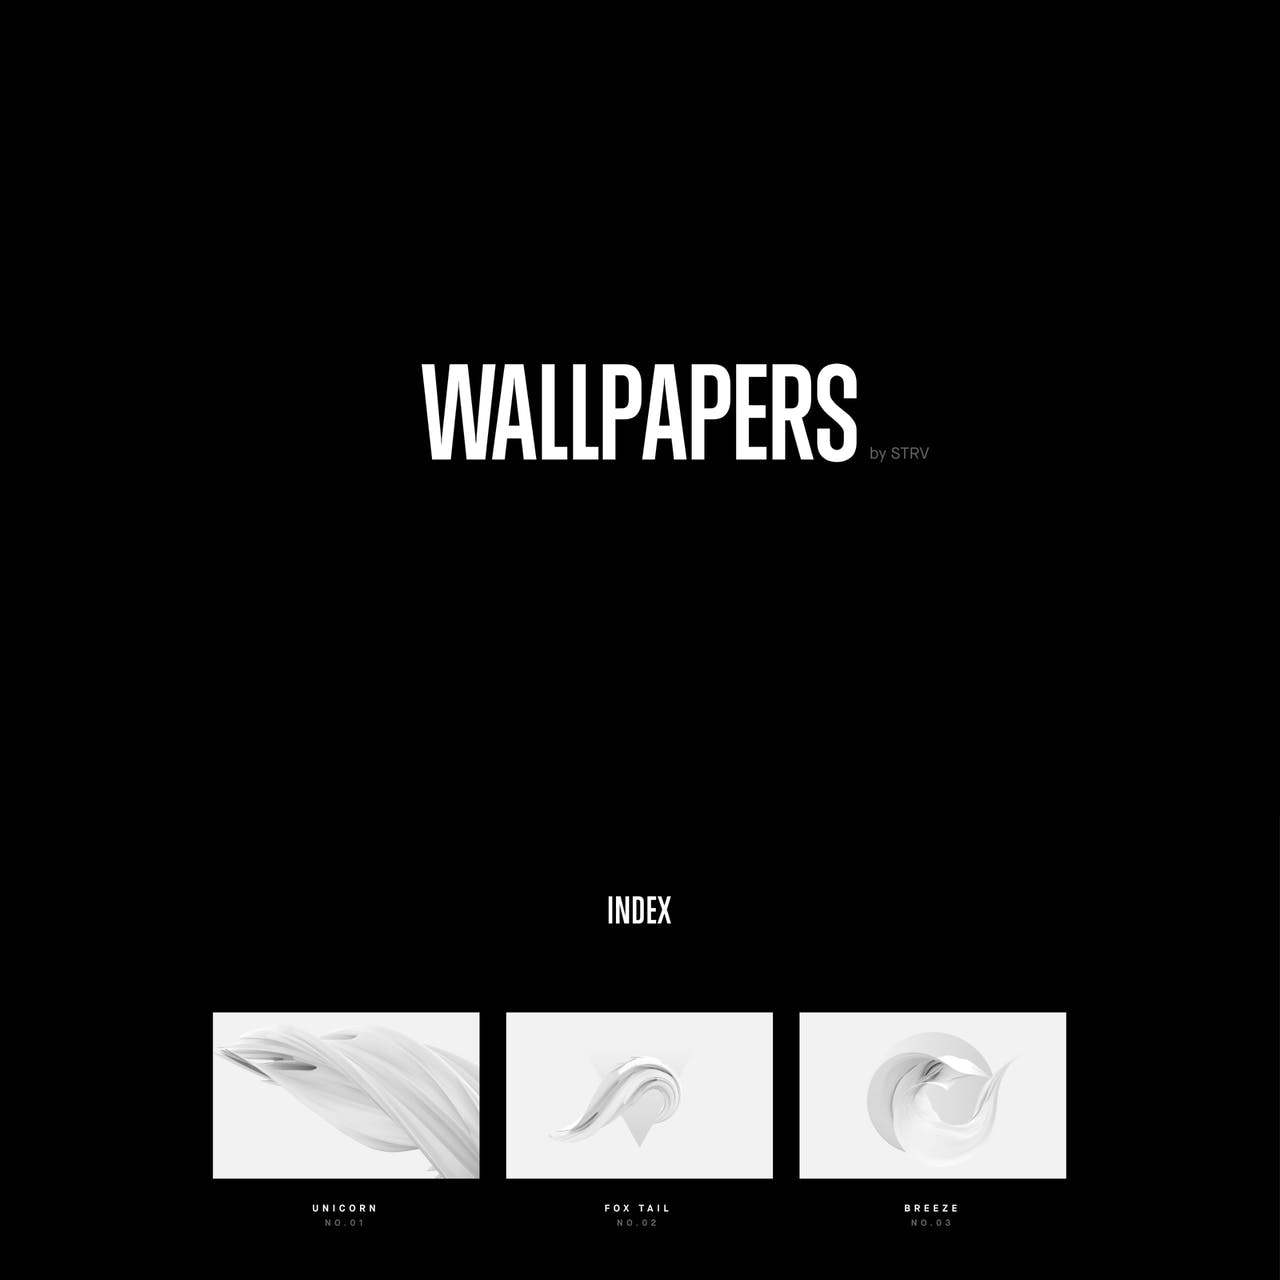 Wallpapers by STRV Website Screenshot